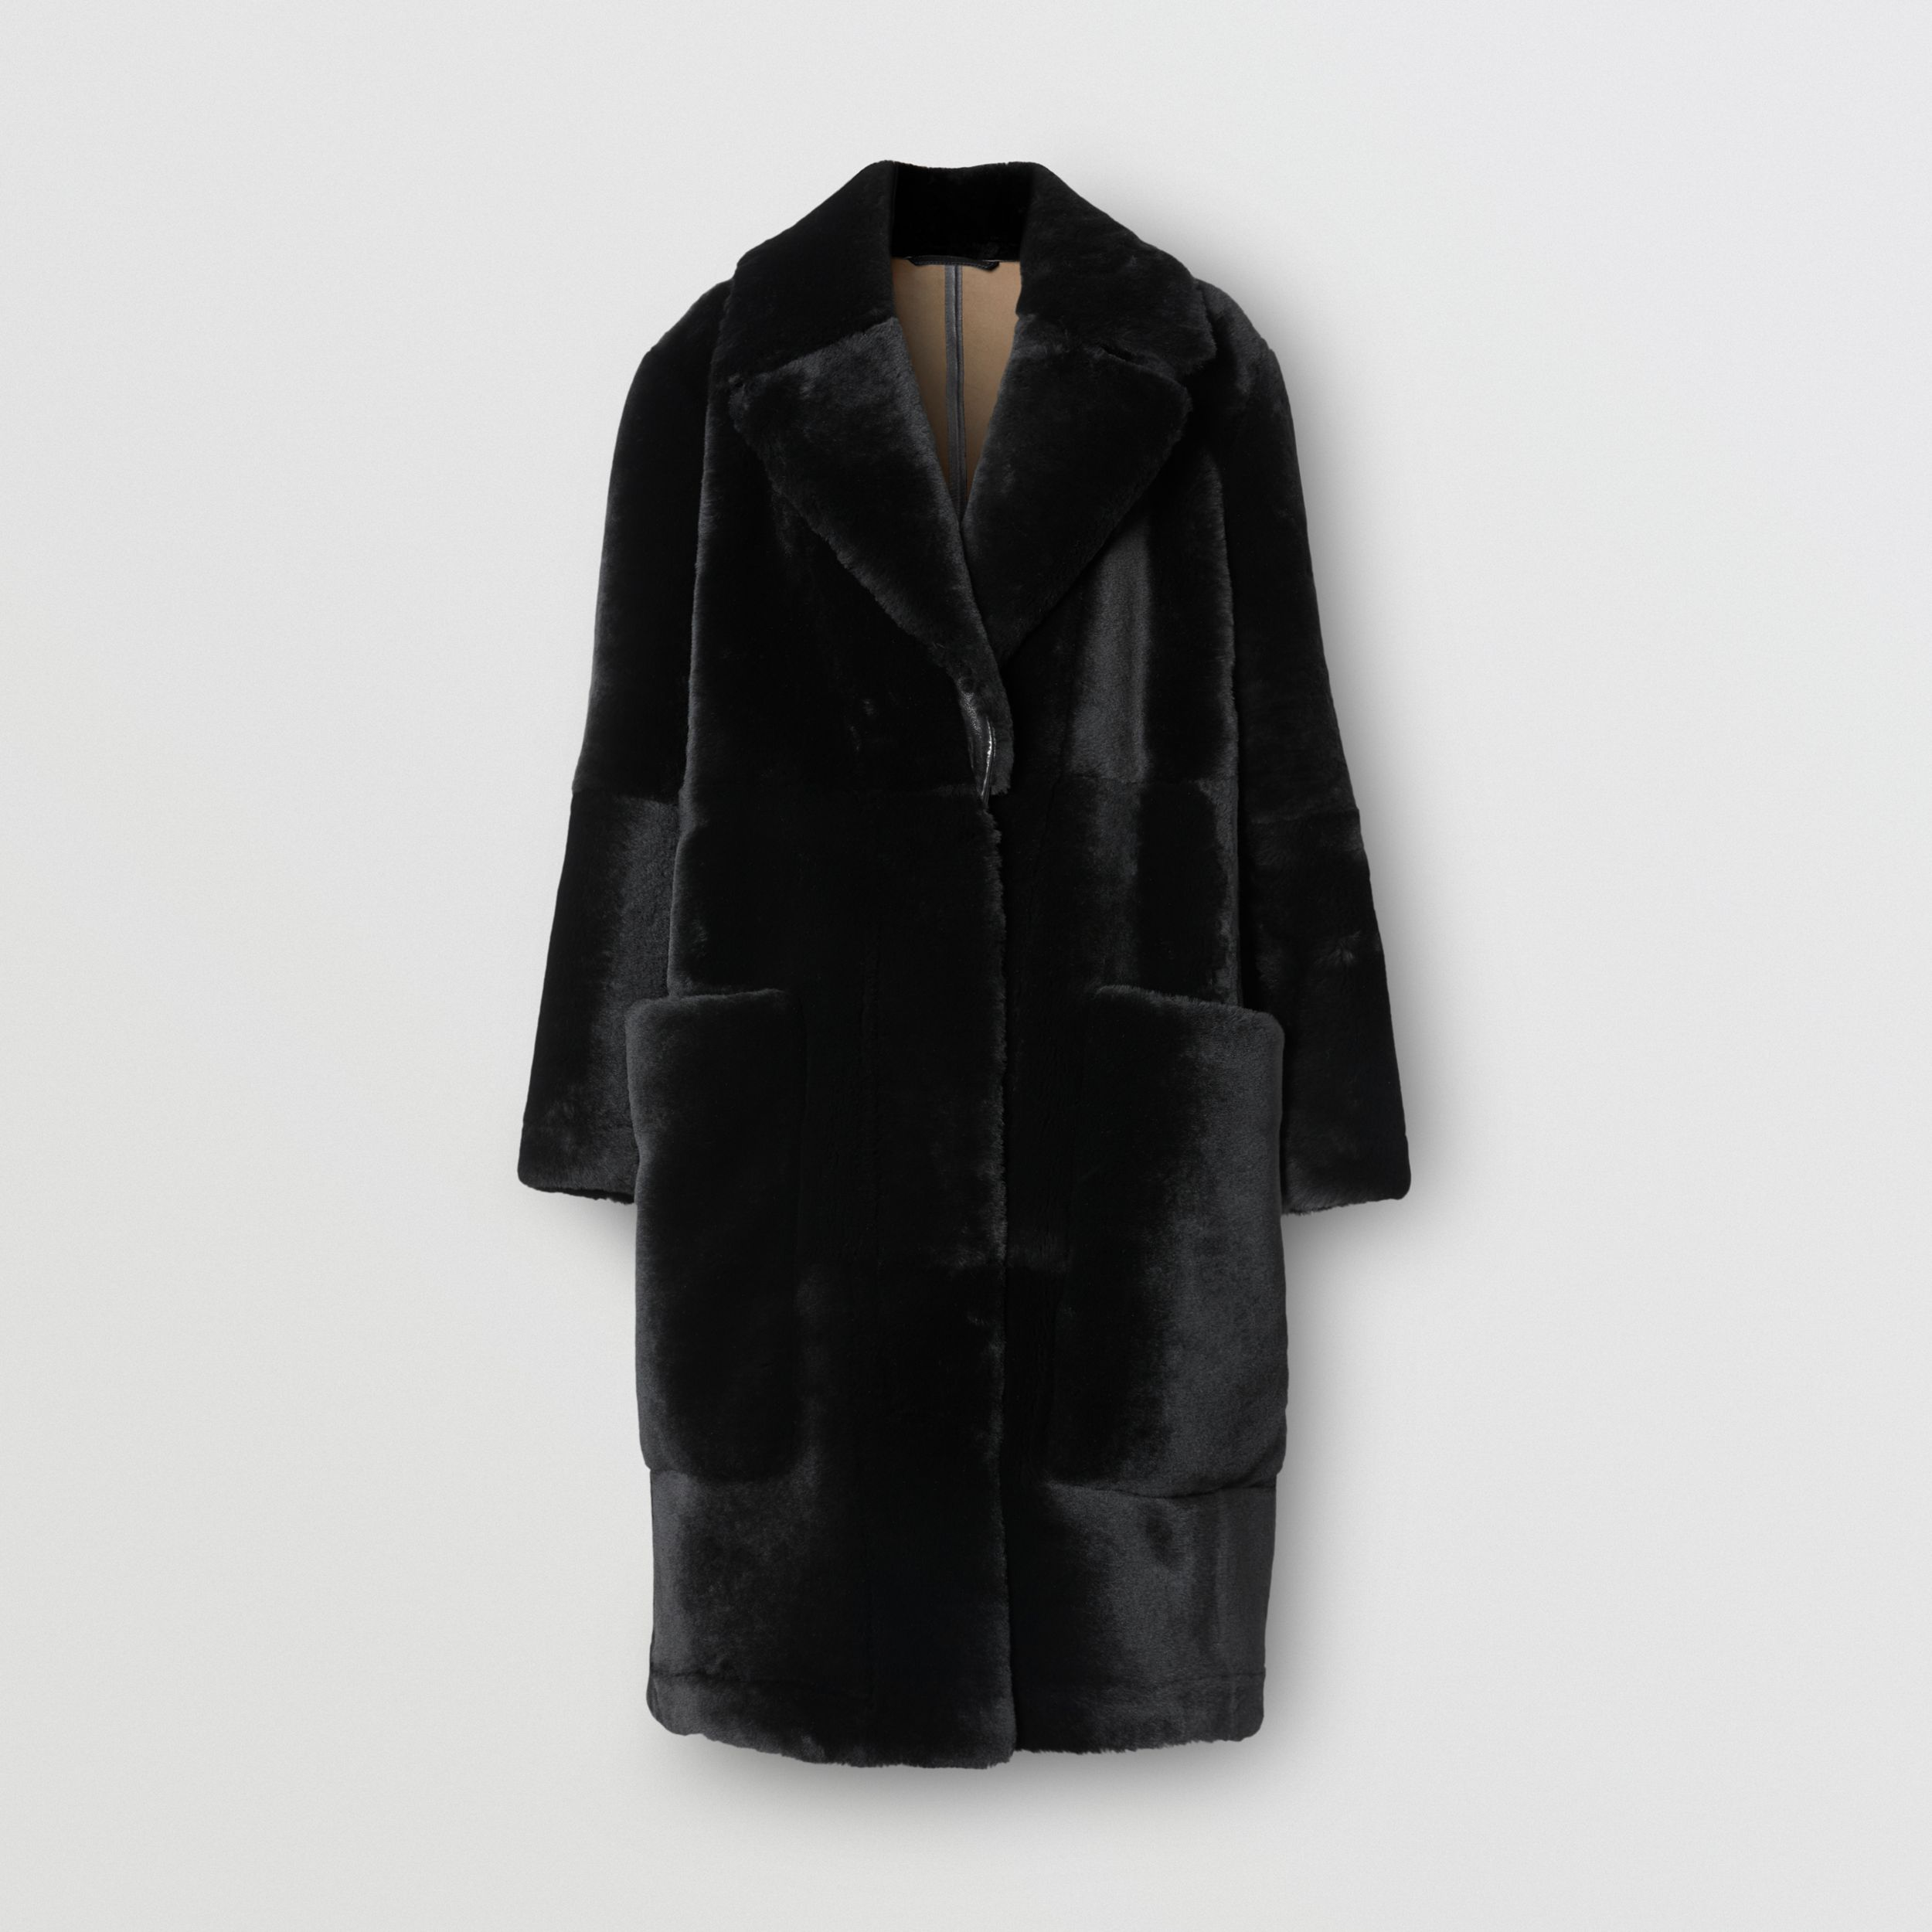 Lambskin Trim Shearling Tailored Coat in Black - Women | Burberry - 4